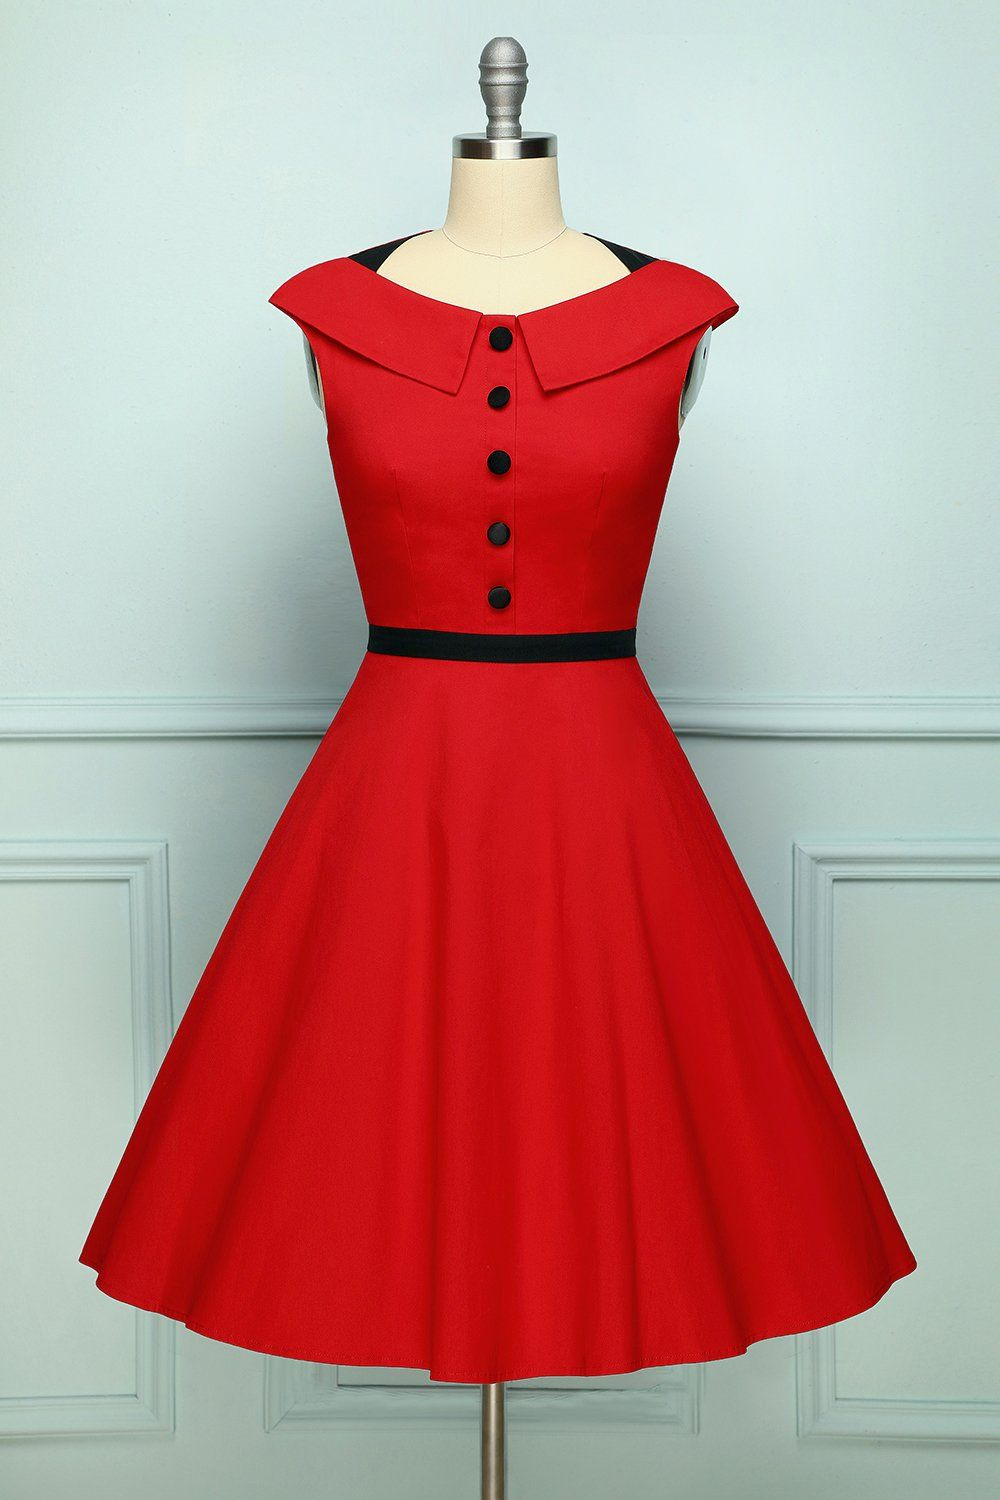 Button Red Dress Dresses Red Dresses For Sale Red Dress [ 1500 x 1000 Pixel ]